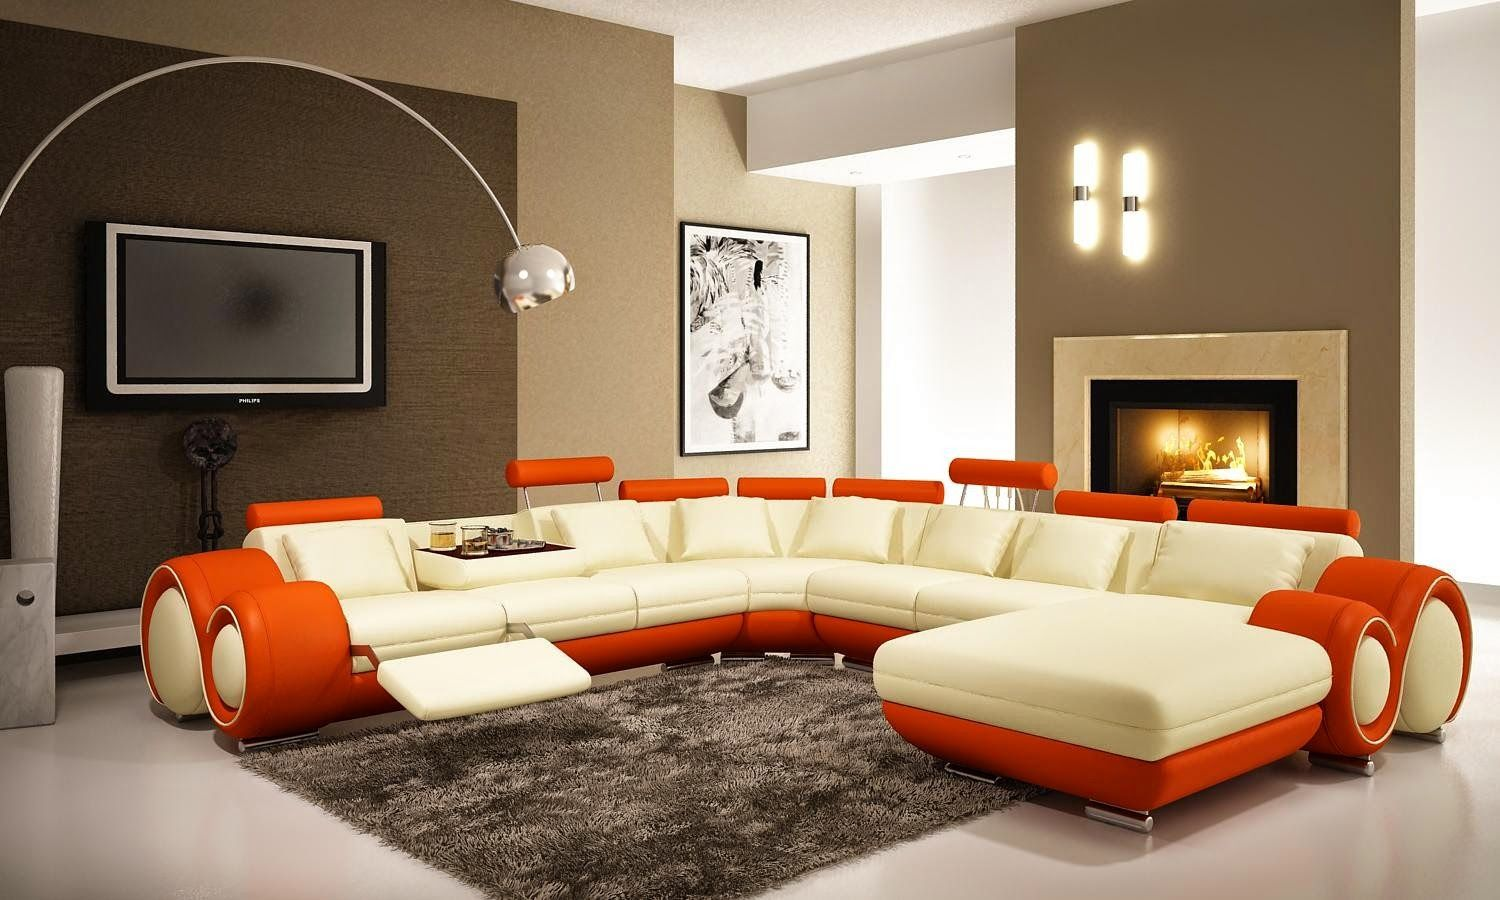 Wide Open Living Room Using Brilliant Home Improvement Ideas with Modern Sofa Chaise and Arc Lamp